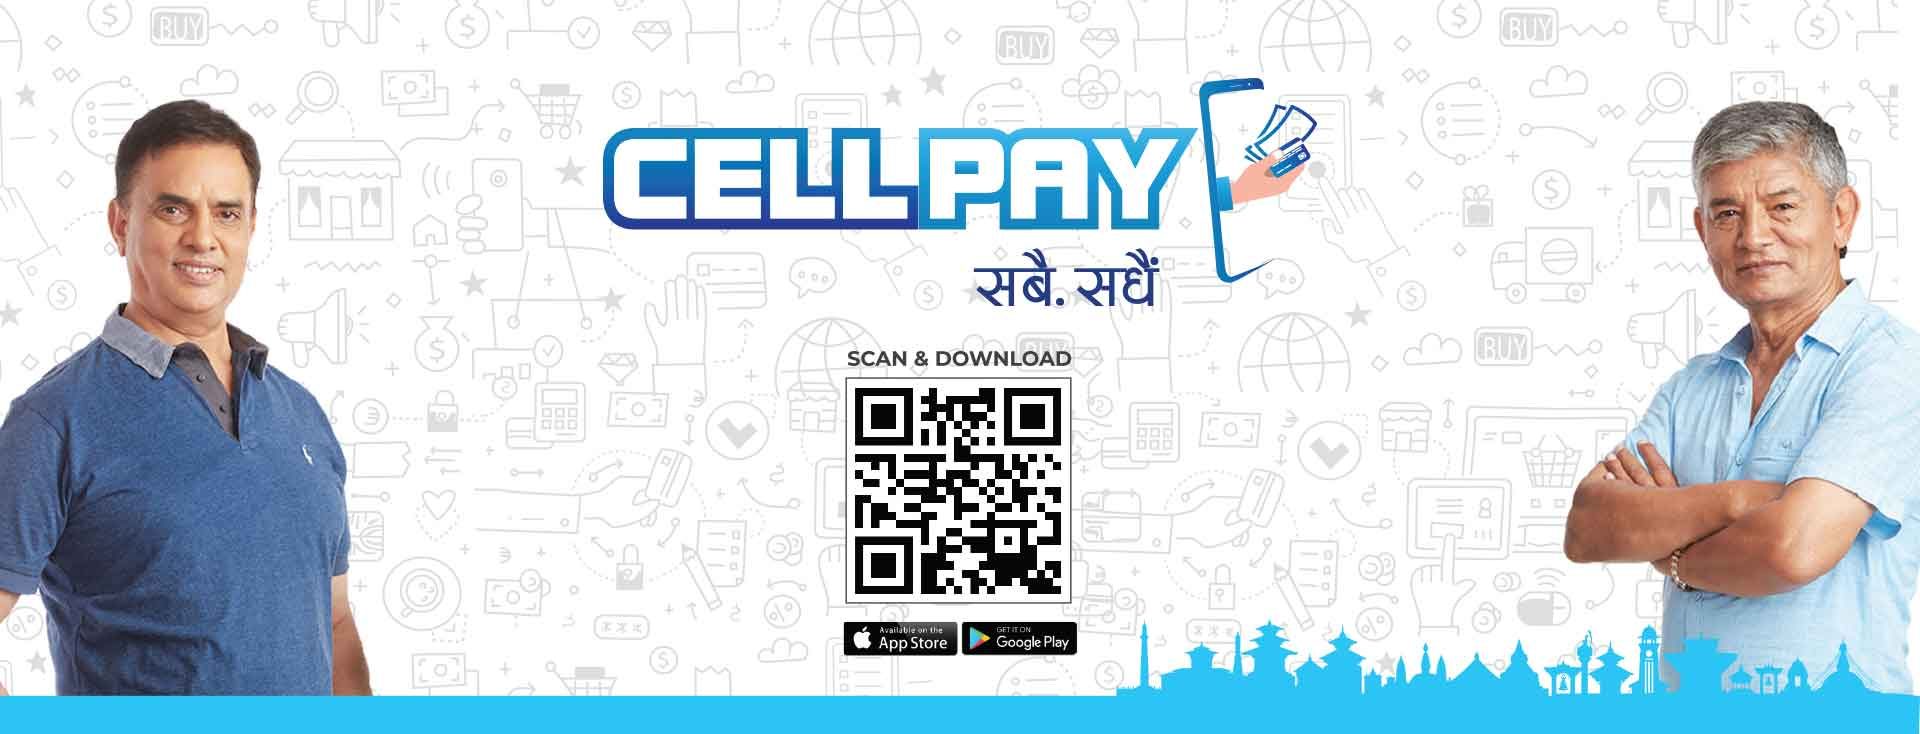 cellpay banner